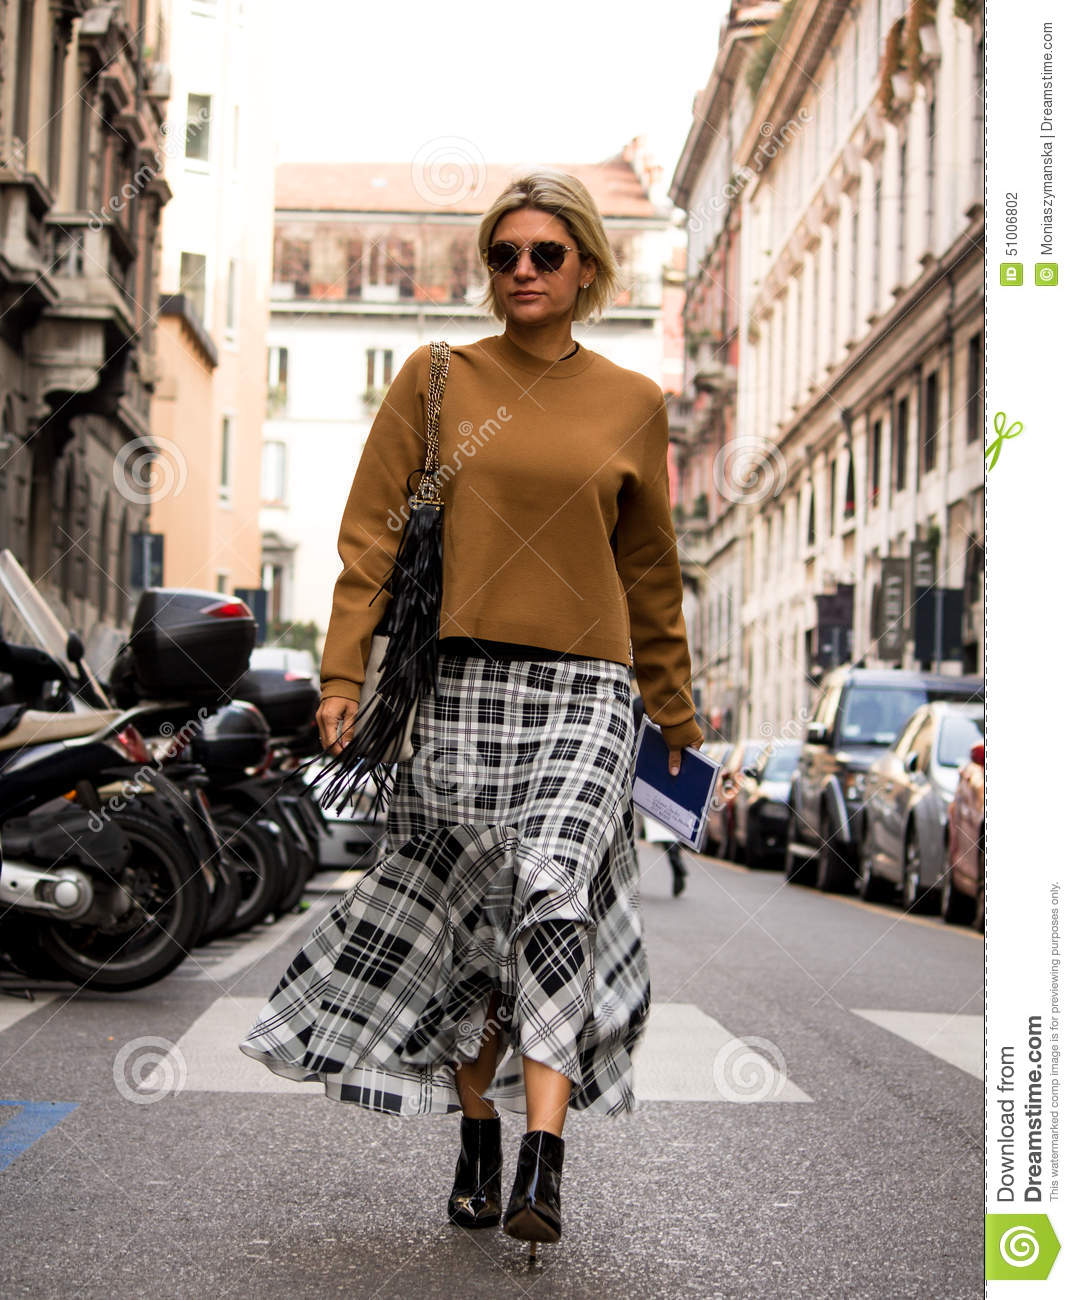 Street Style Milan Fashion Week Autumn Winter 2015 16 Editorial Photography Image 51006802